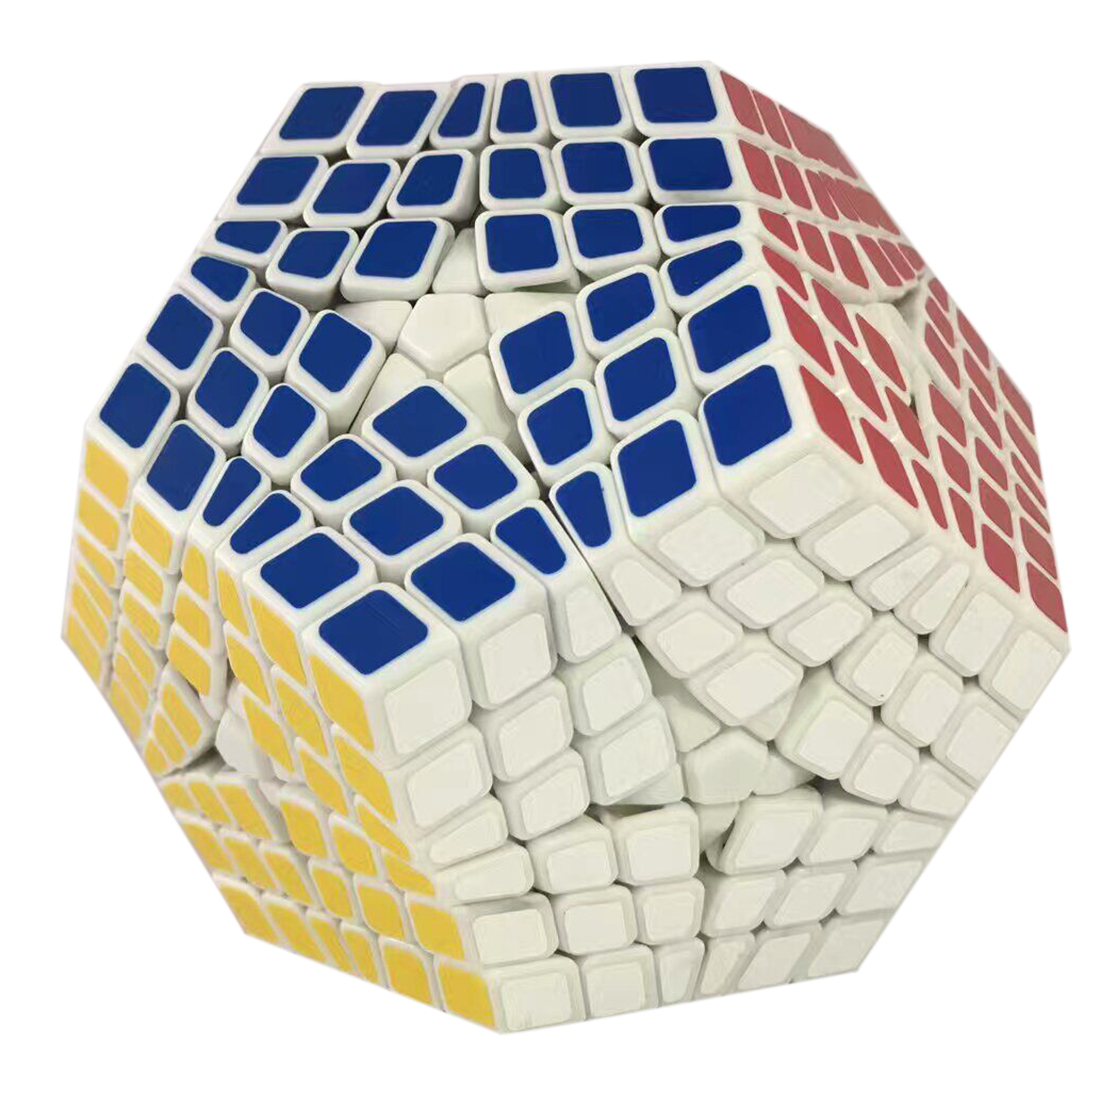 6x6x6 Megaminx Brain Teaser Magic Cube Speed Cube Twisty Puzzle Toy verrypuzzle clover dodecahedron magic cube speed twisty puzzle megaminx cubes game educational toys for kids children